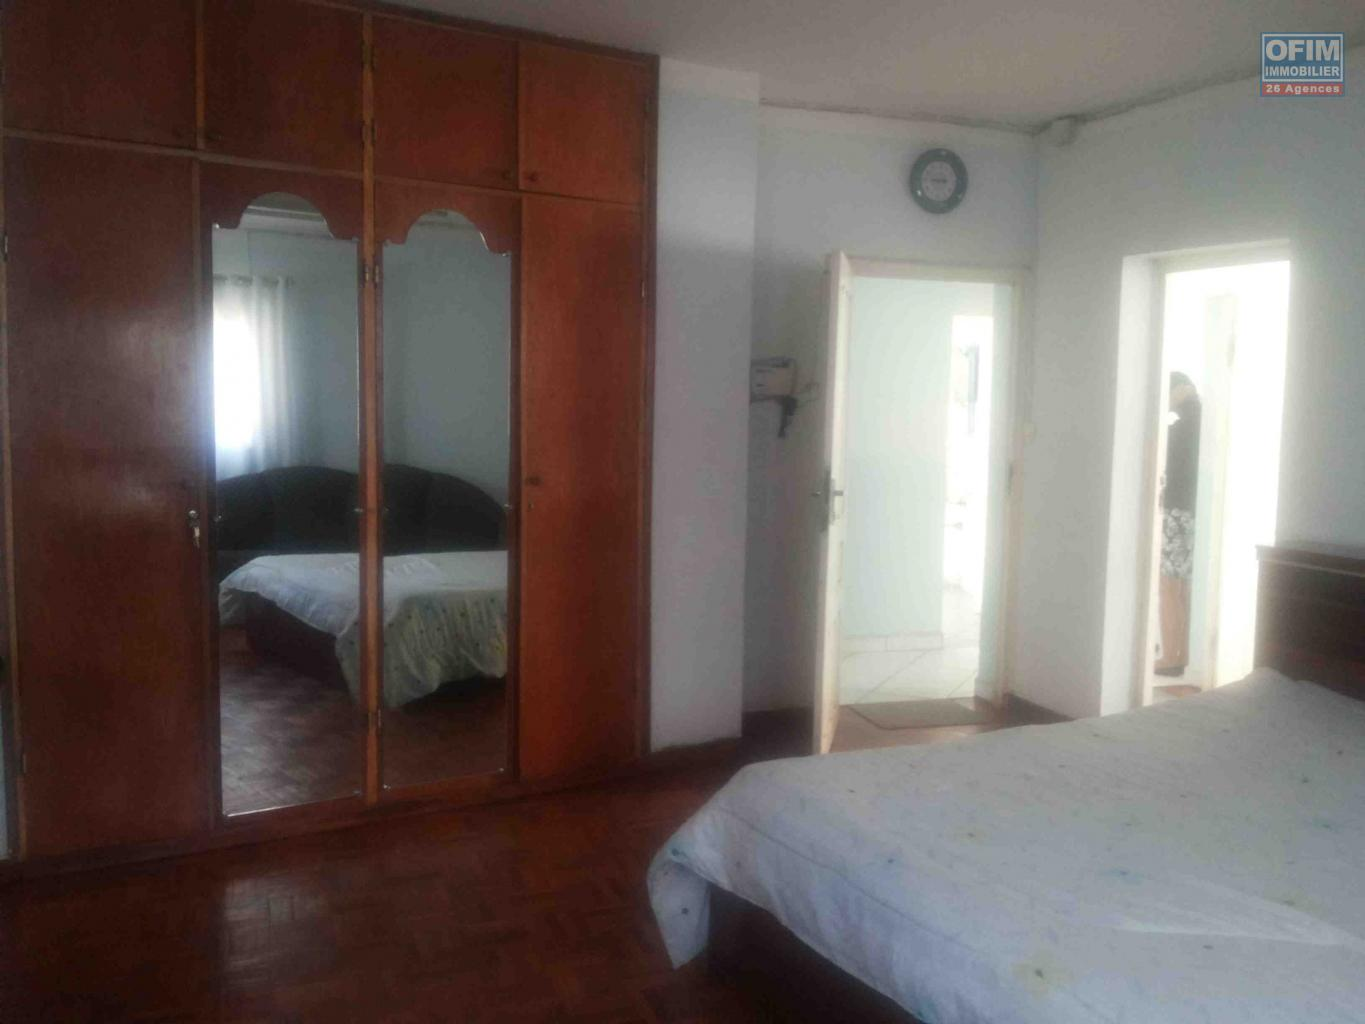 Location appartement antananarivo tananarive a for Louer un appartement meuble